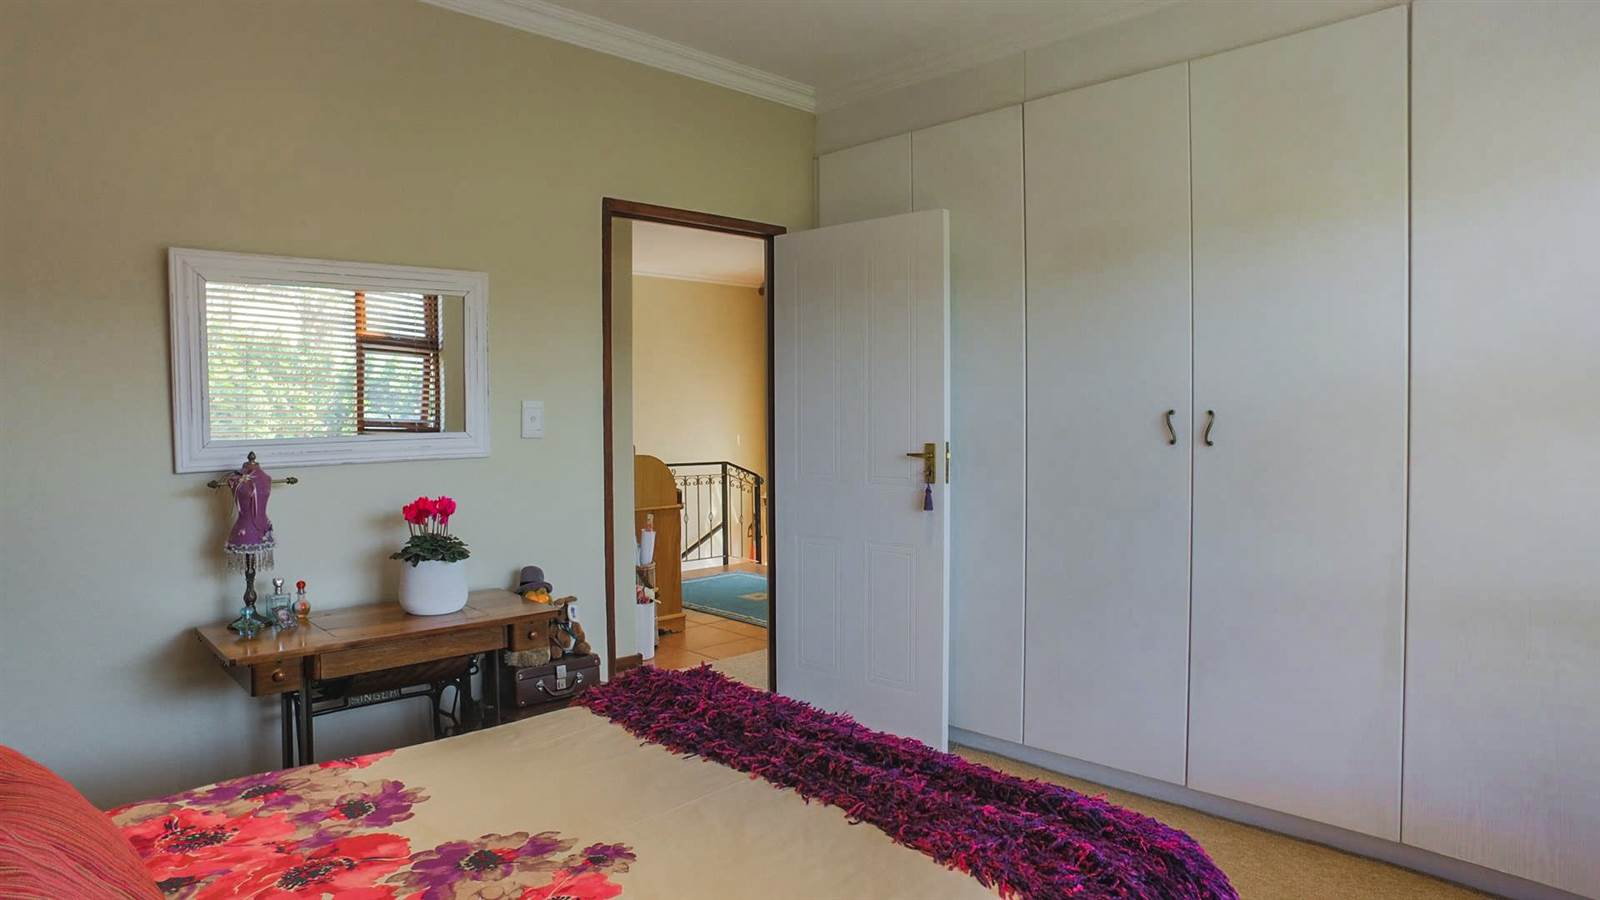 4 Bedroom Townhouse for sale in Mulbarton ENT0067436 : photo#23